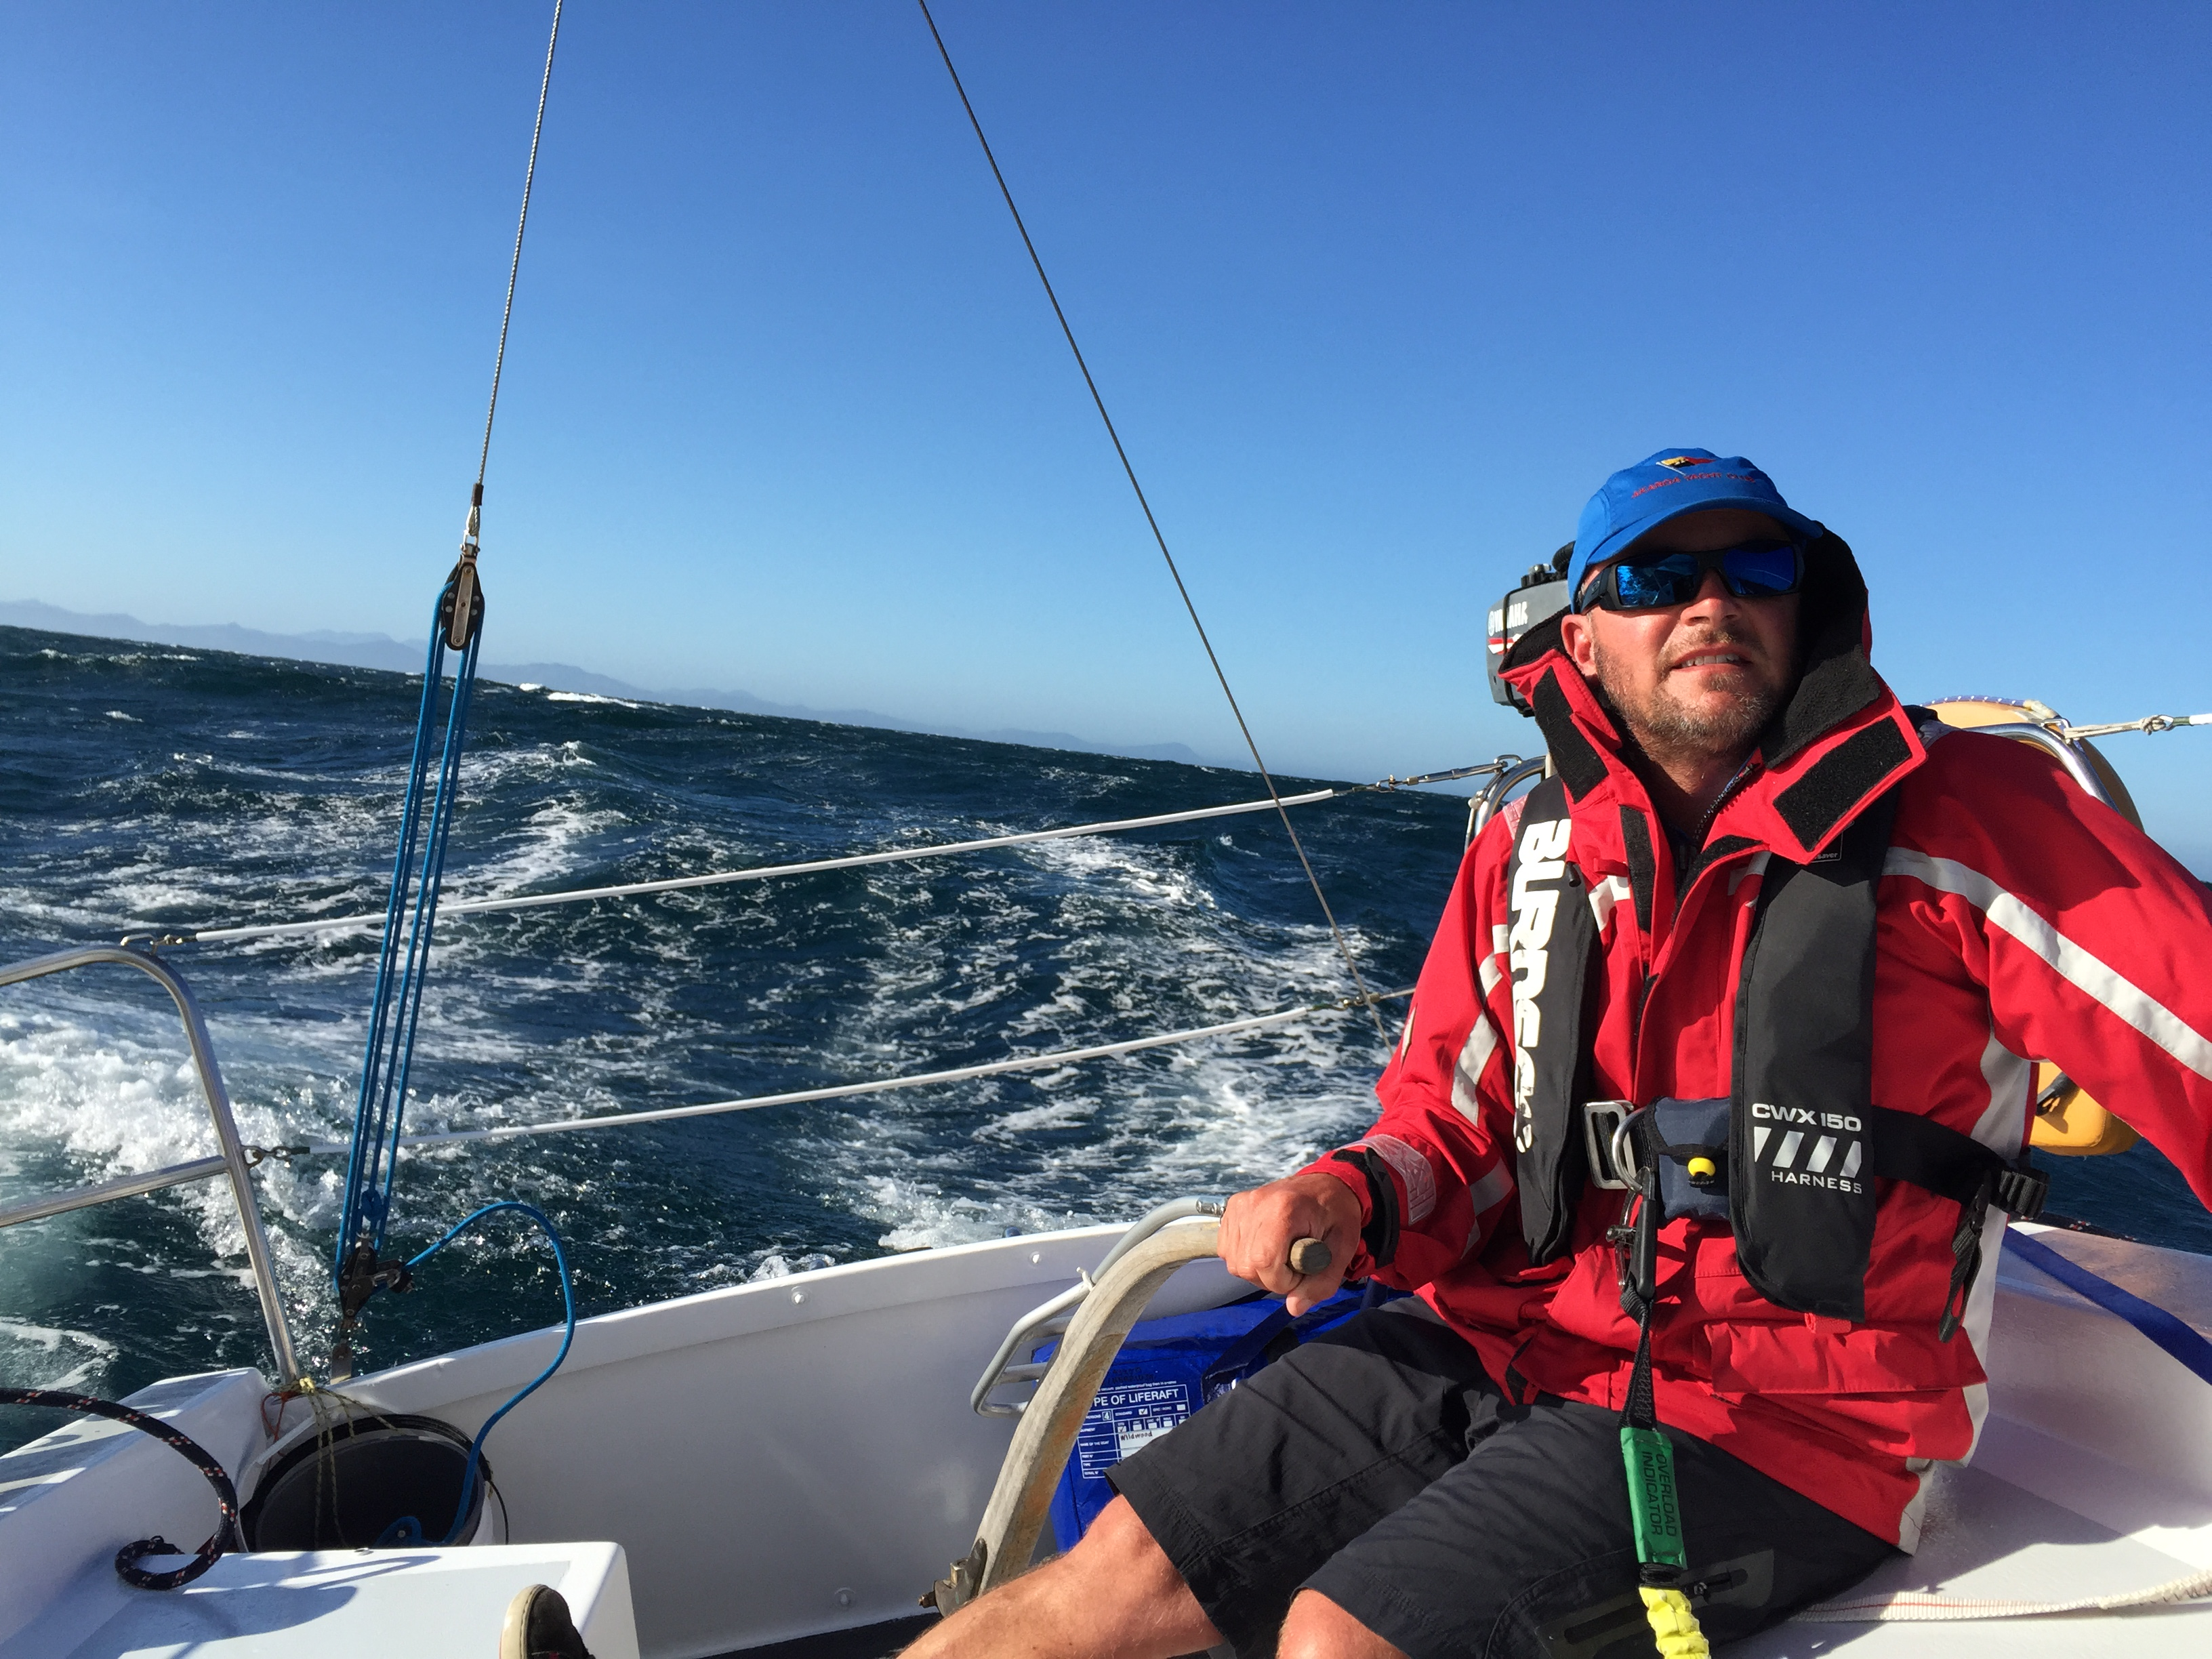 About Astrolabe Sailing Harness For Sailboat Qualifications Skills